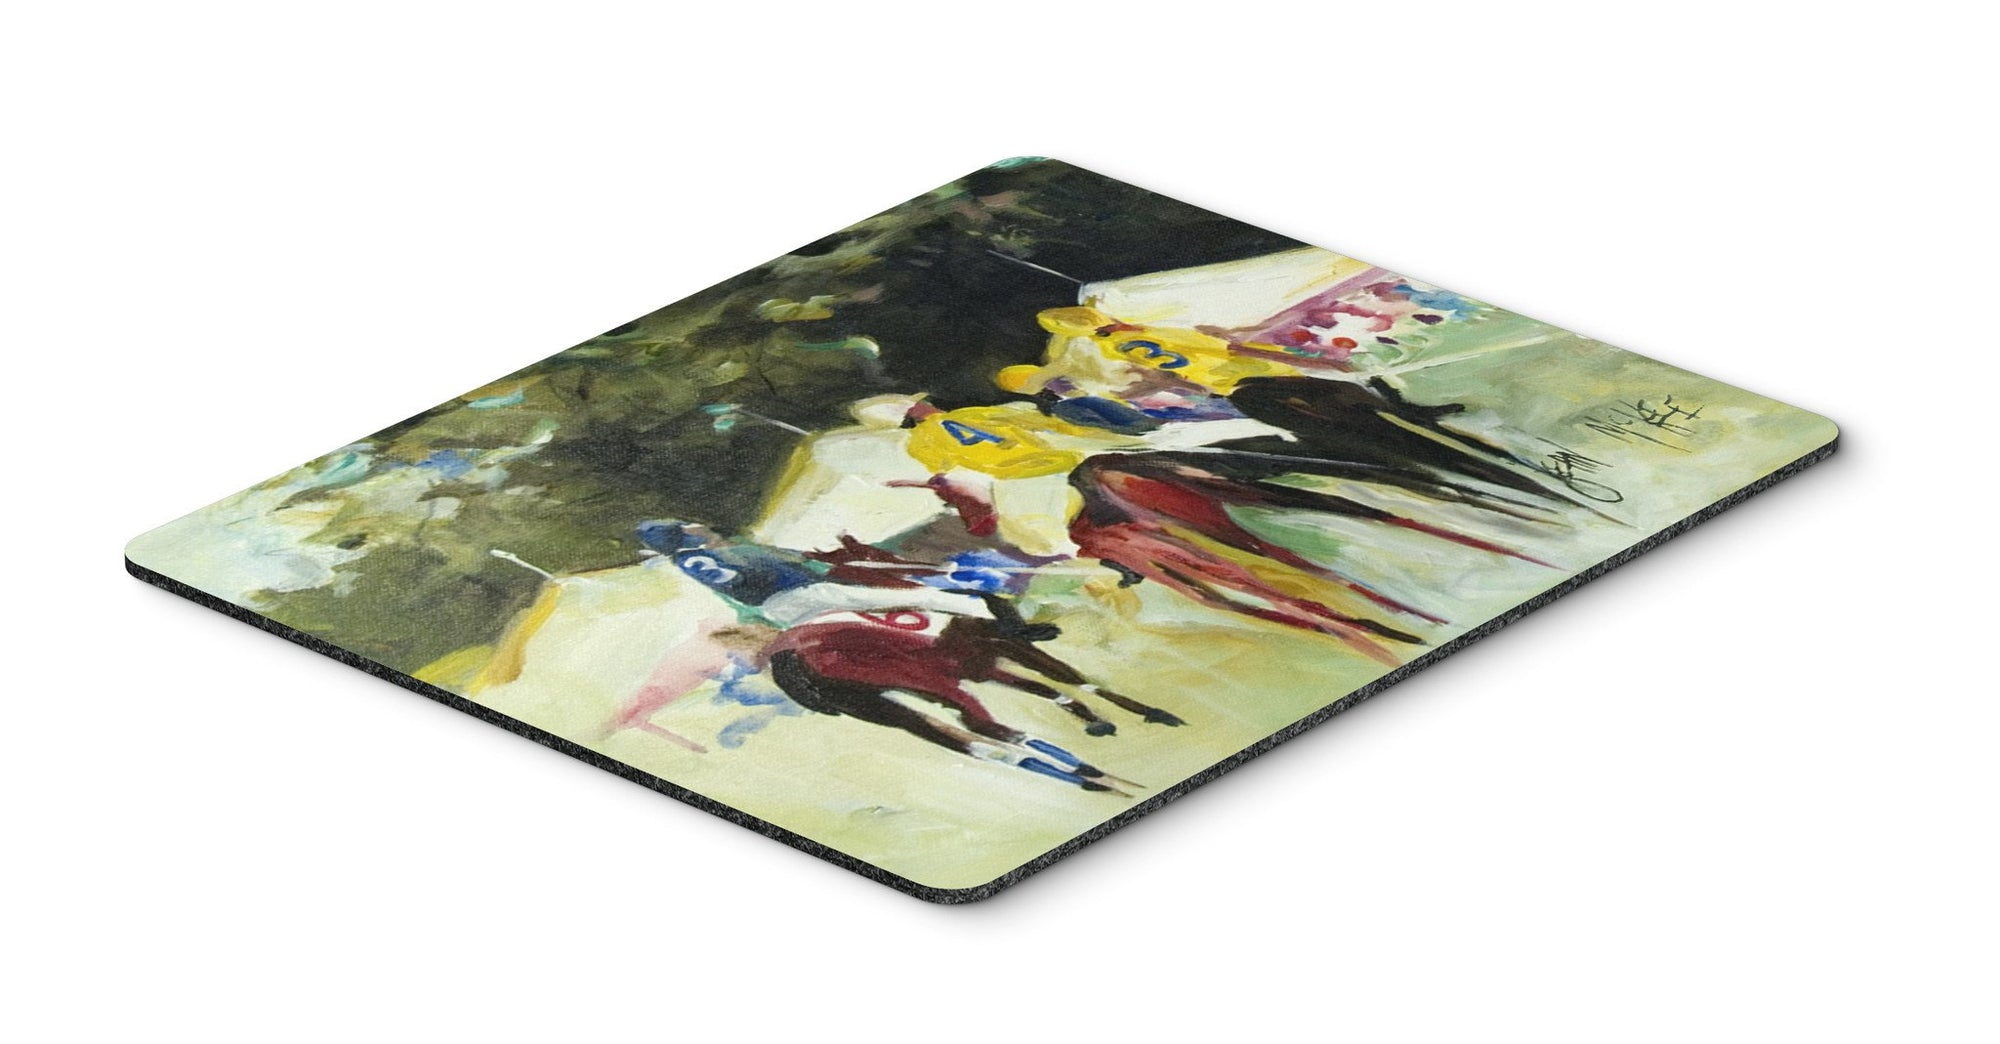 Polo at the Point Mouse Pad, Hot Pad or Trivet JMK1007MP by Caroline's Treasures